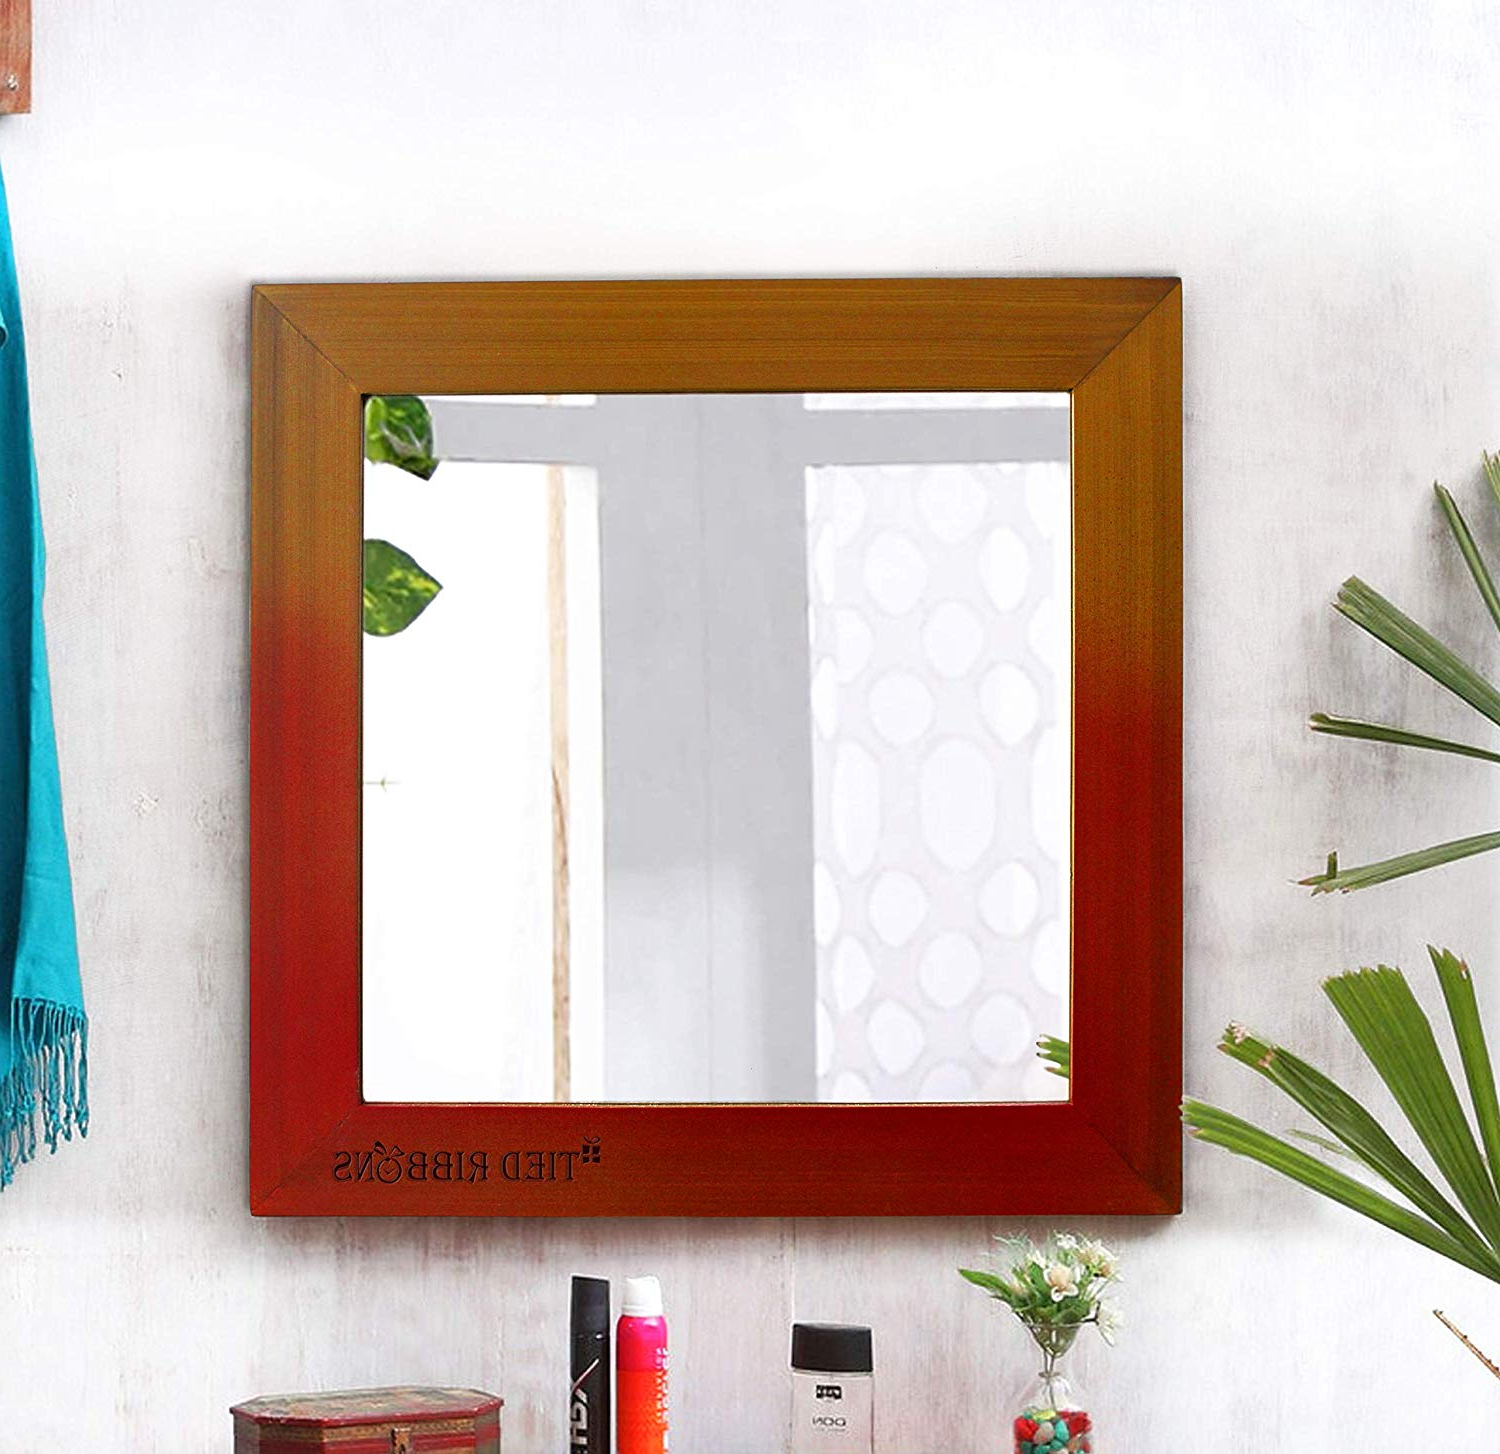 Newest Tied Ribbons Decorative Wall Mirror For Living Room, Decoration Bedroom  Bathroom (37.5 Cm X 37.5 Cm, Wood Framed) Throughout Decorative Wall Mirrors For Living Room (Gallery 13 of 20)